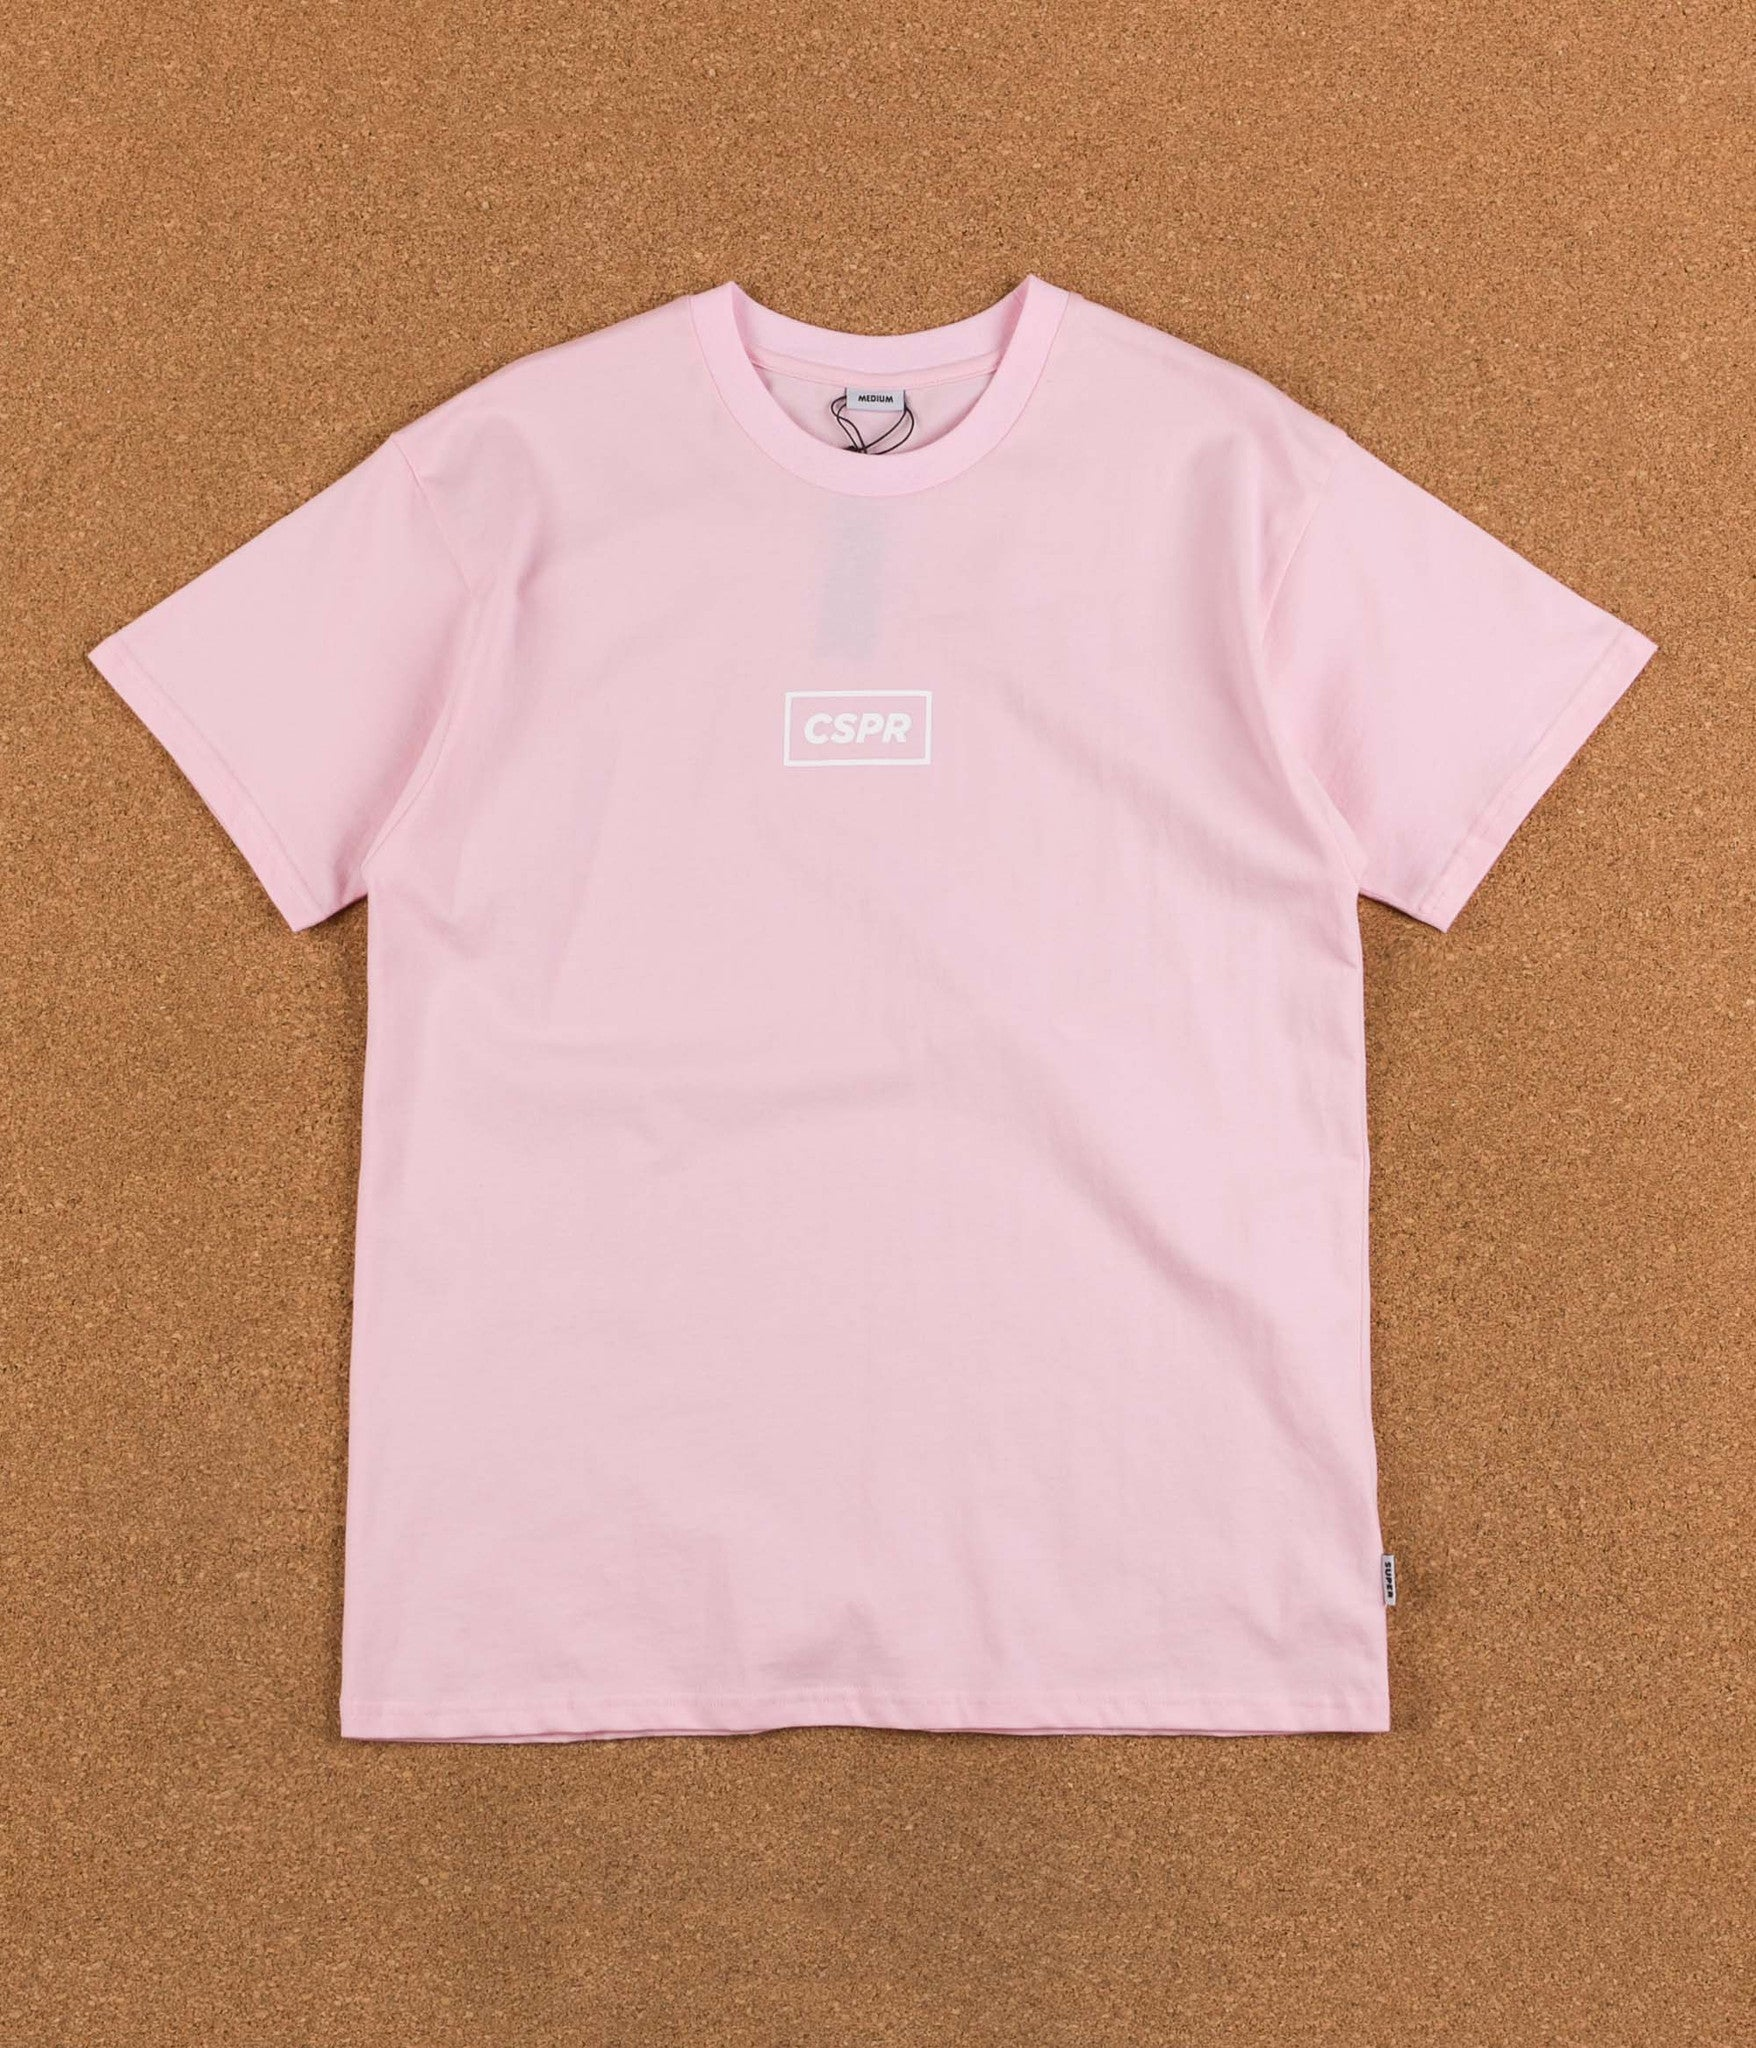 Colorsuper CSPR T-Shirt - Pink / White